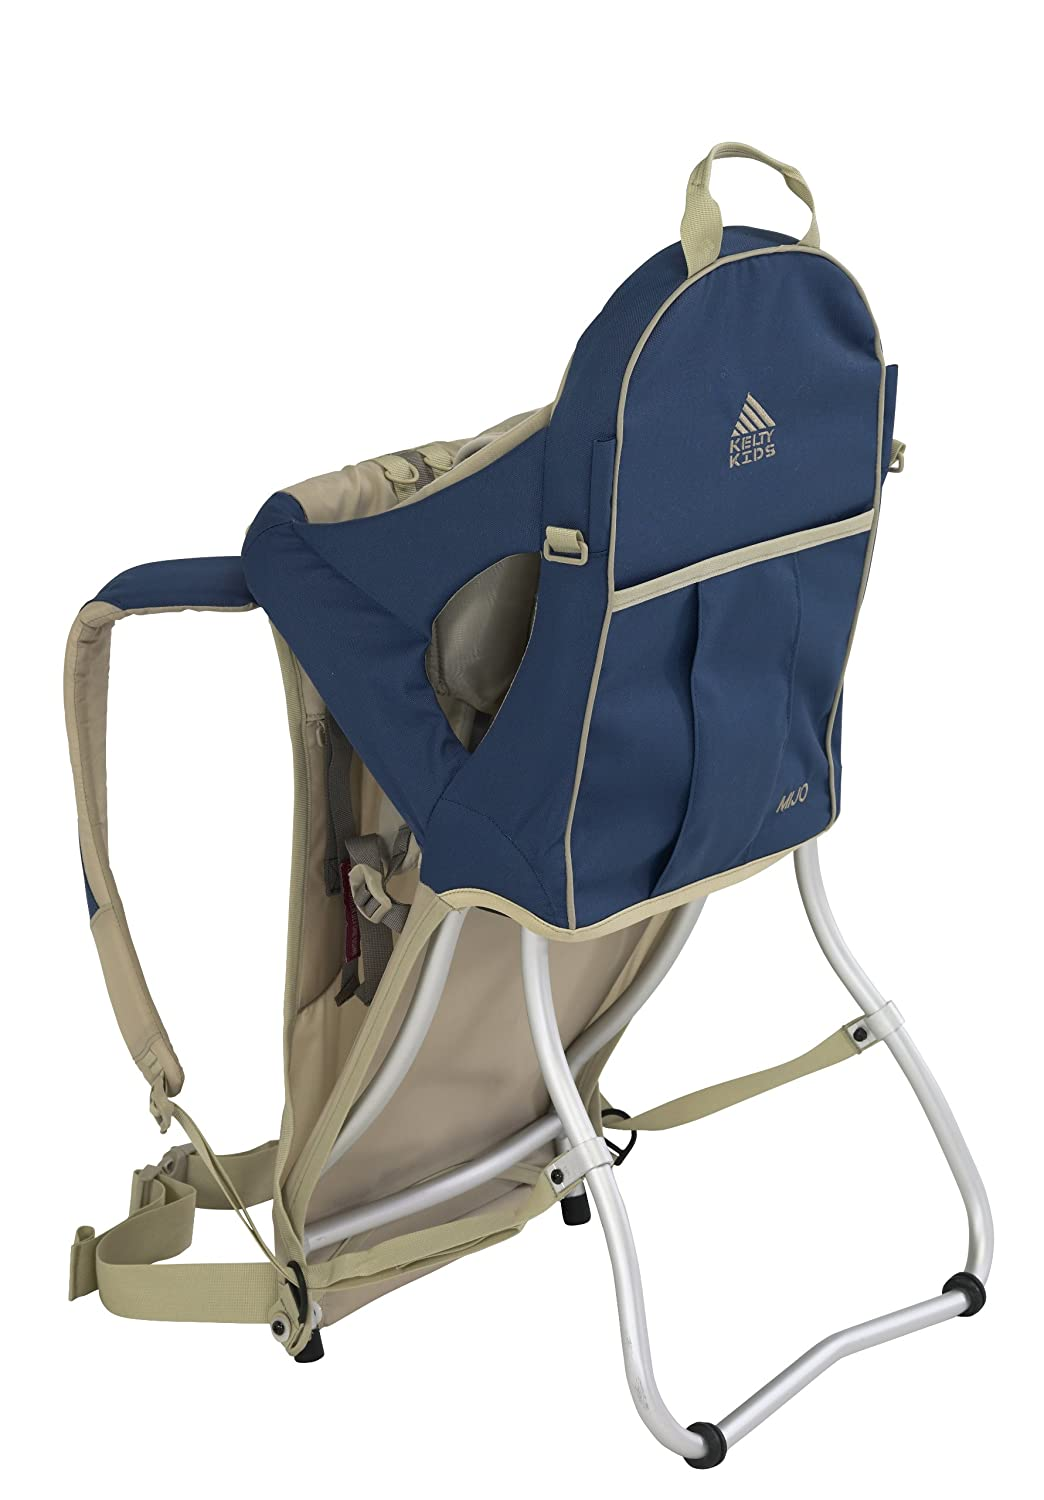 Kelty Kindertrage Mijo mit Rahmen, Blau, 860-20652511BLU: Amazon.de ...